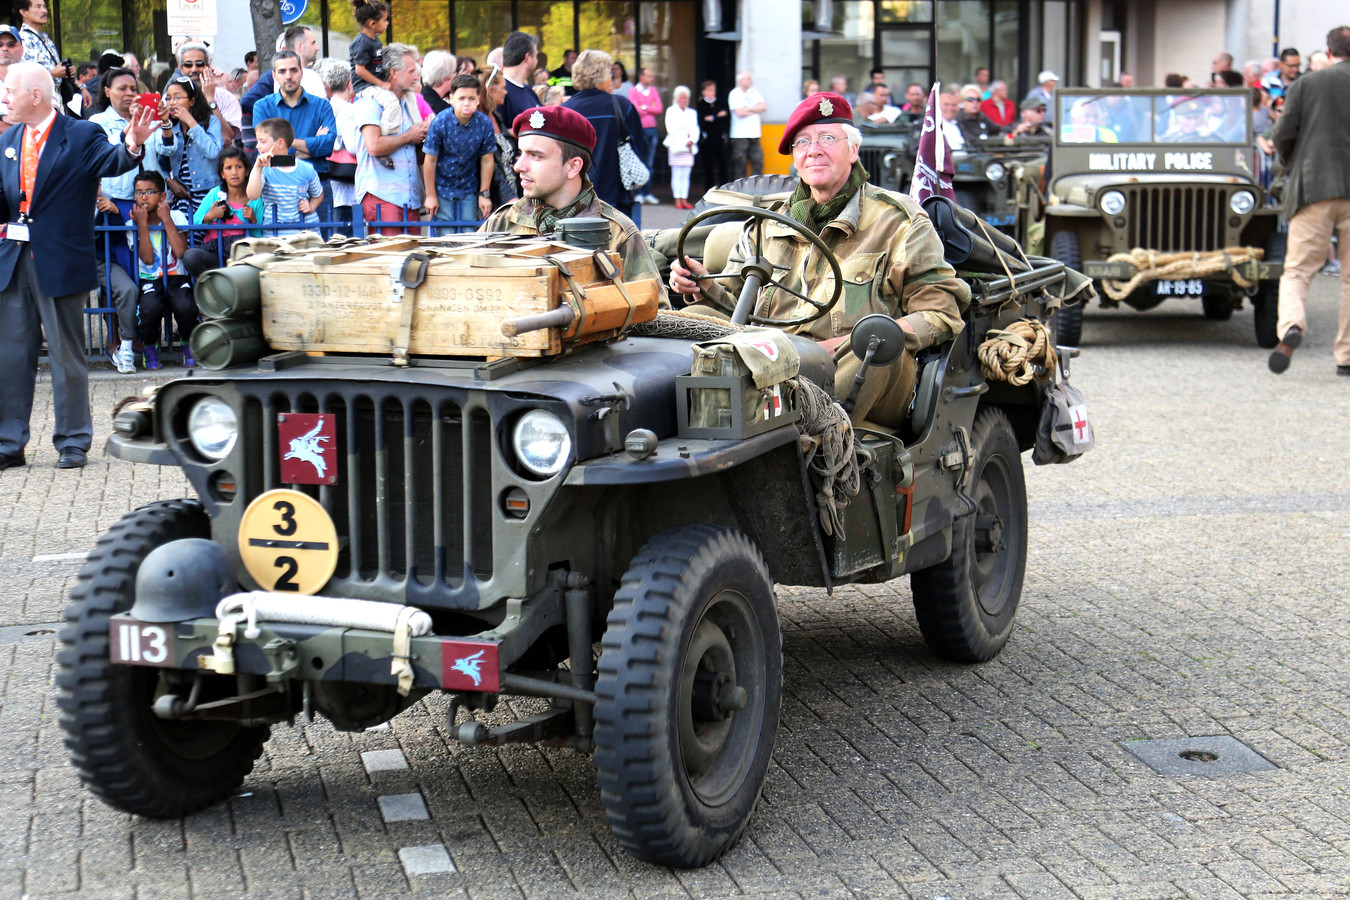 Veteranen in de straten van Zoeermeer.